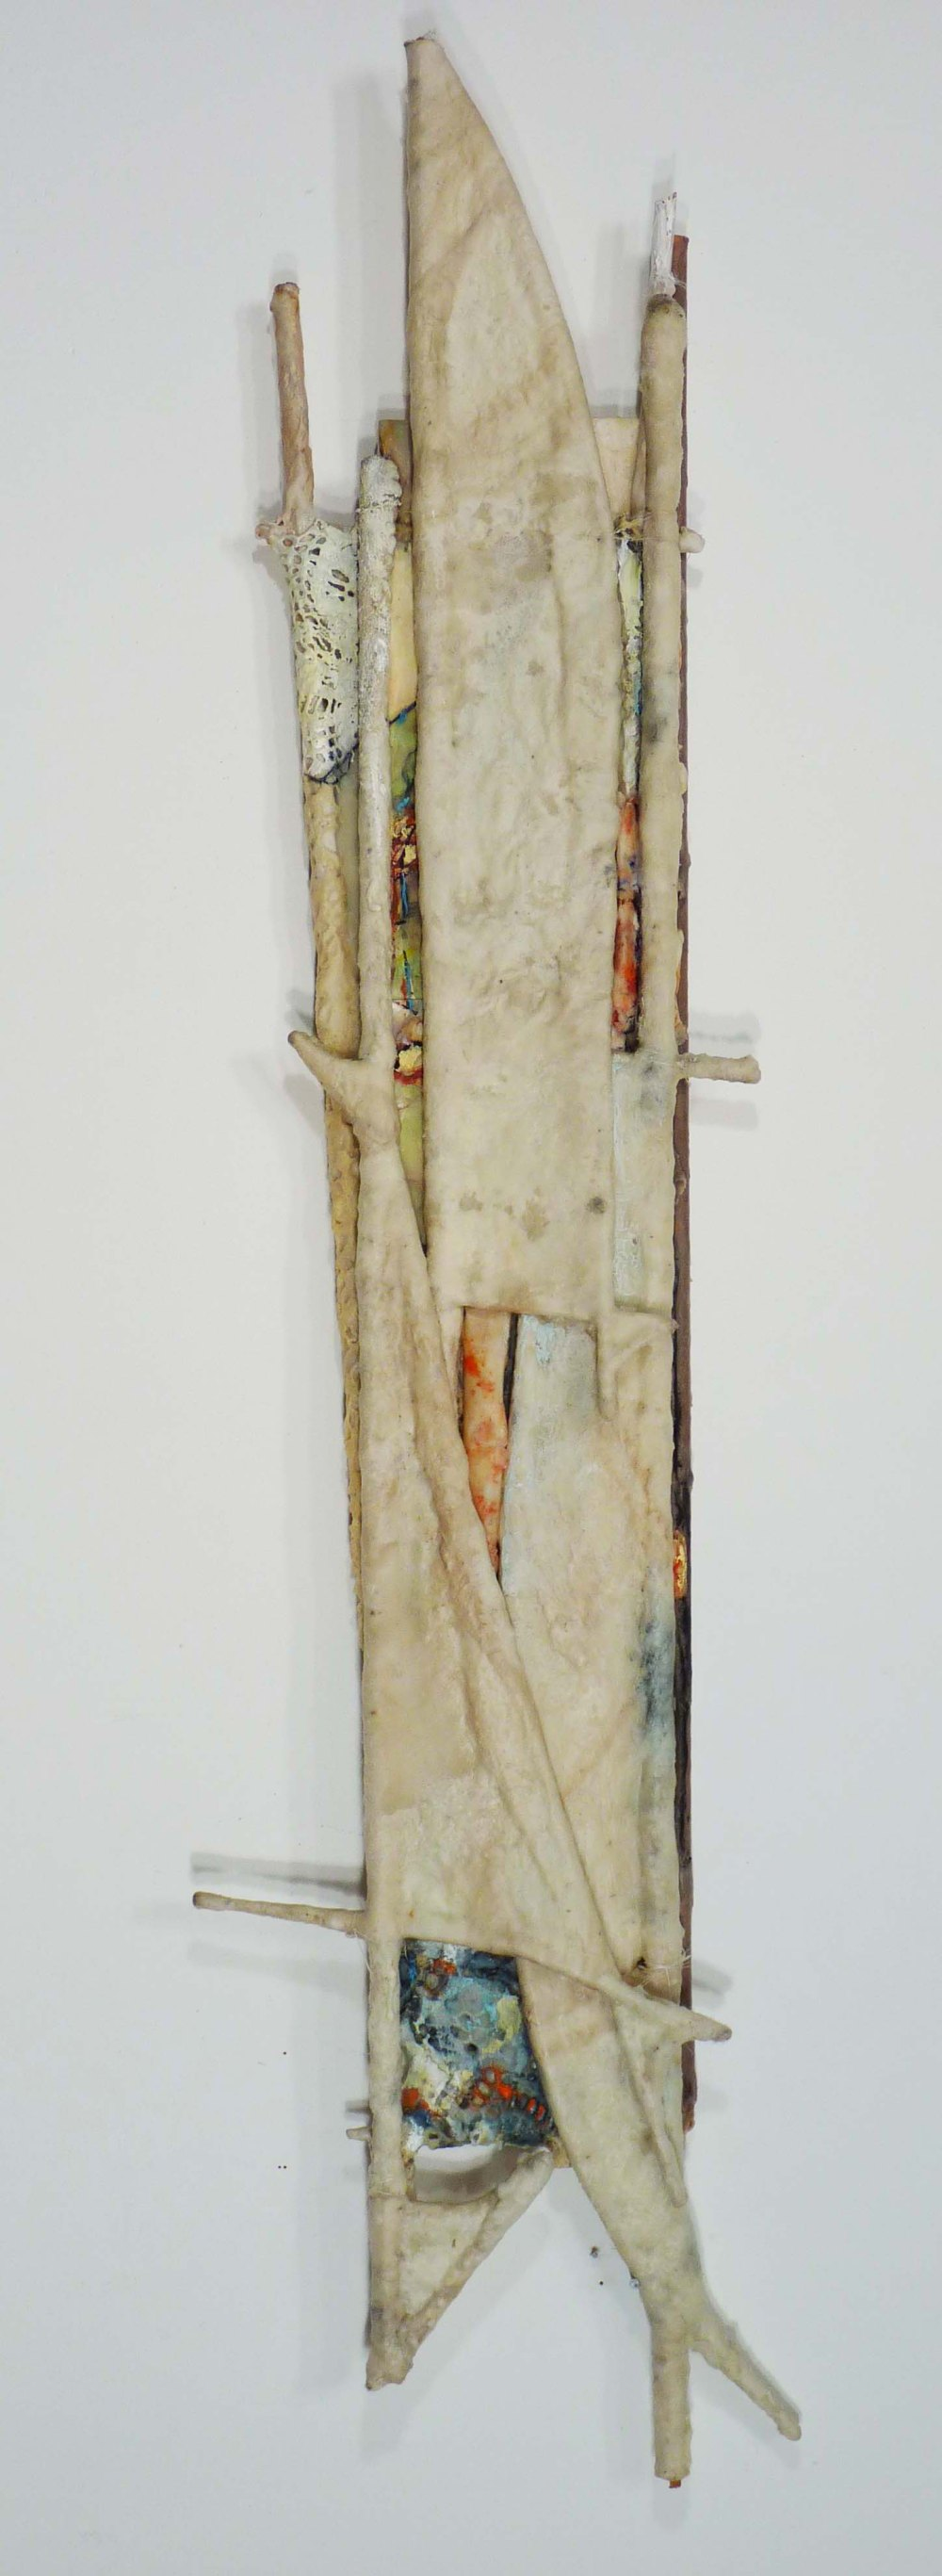 Tree Form I: 5' x 2', felt, paper, wax, oil, lace, wood.